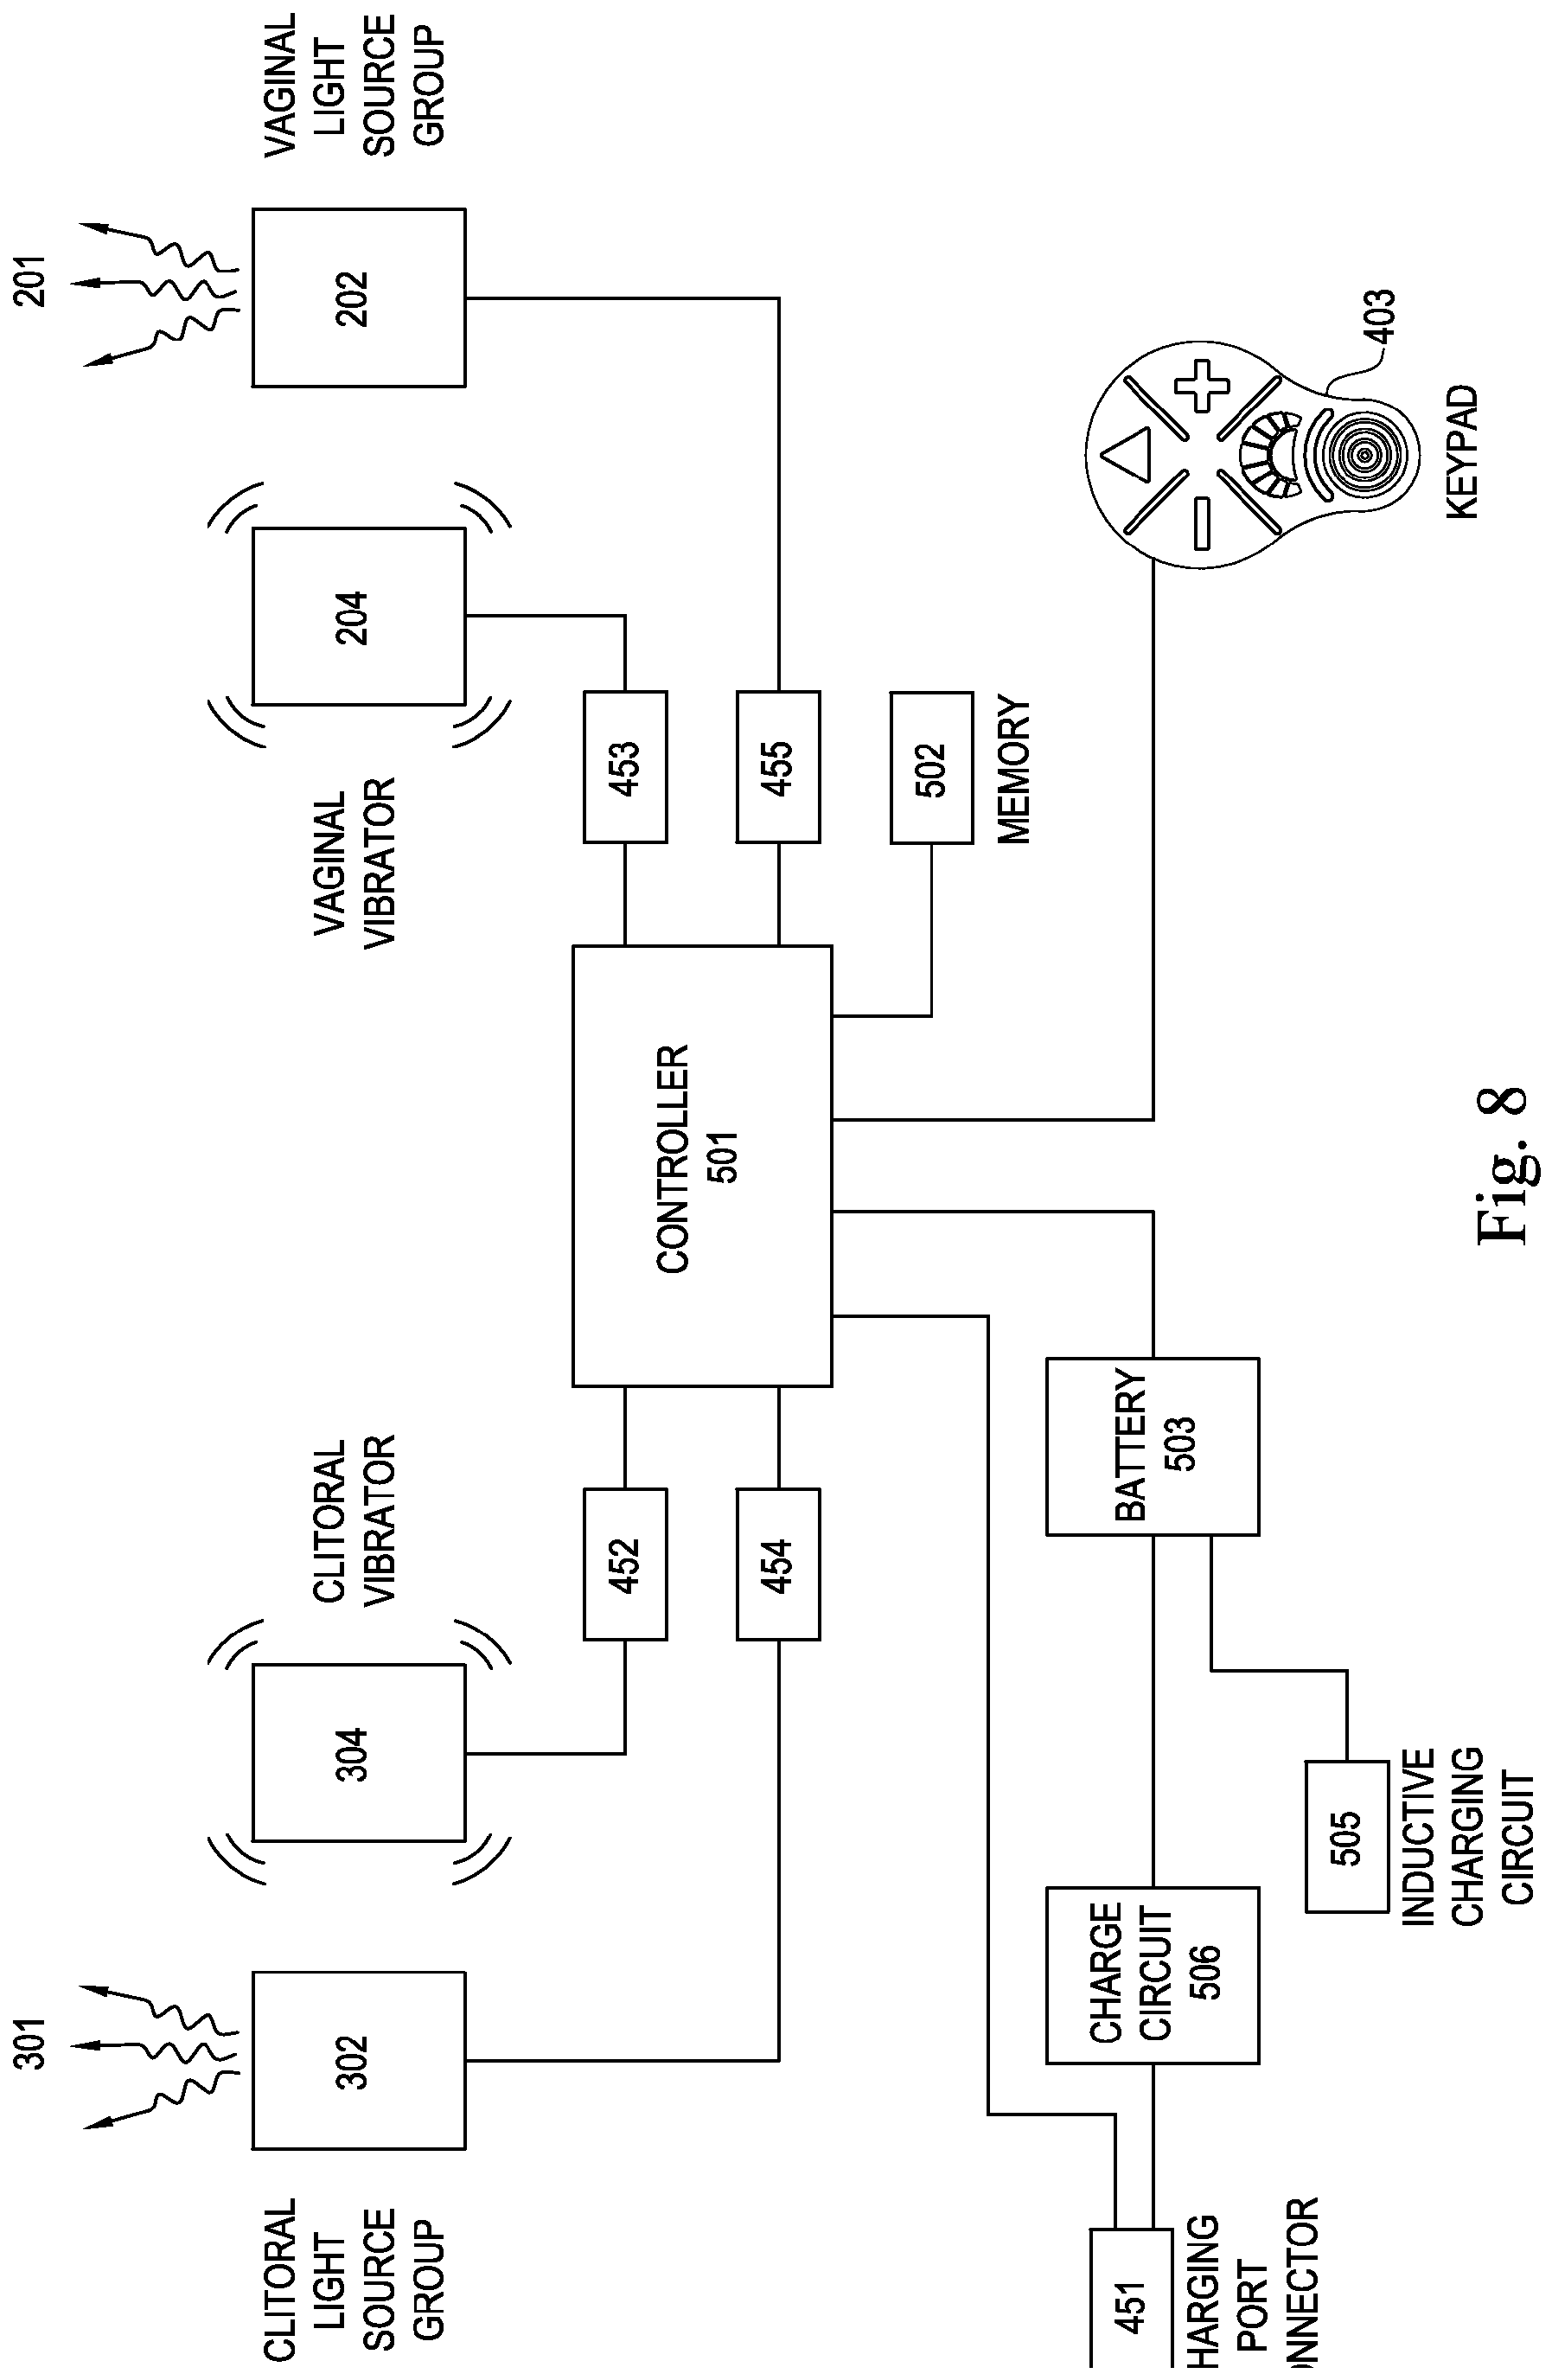 SEXUAL STIMULATION DEVICE USING LIGHT THERAPY AND VIBRATION - Patent